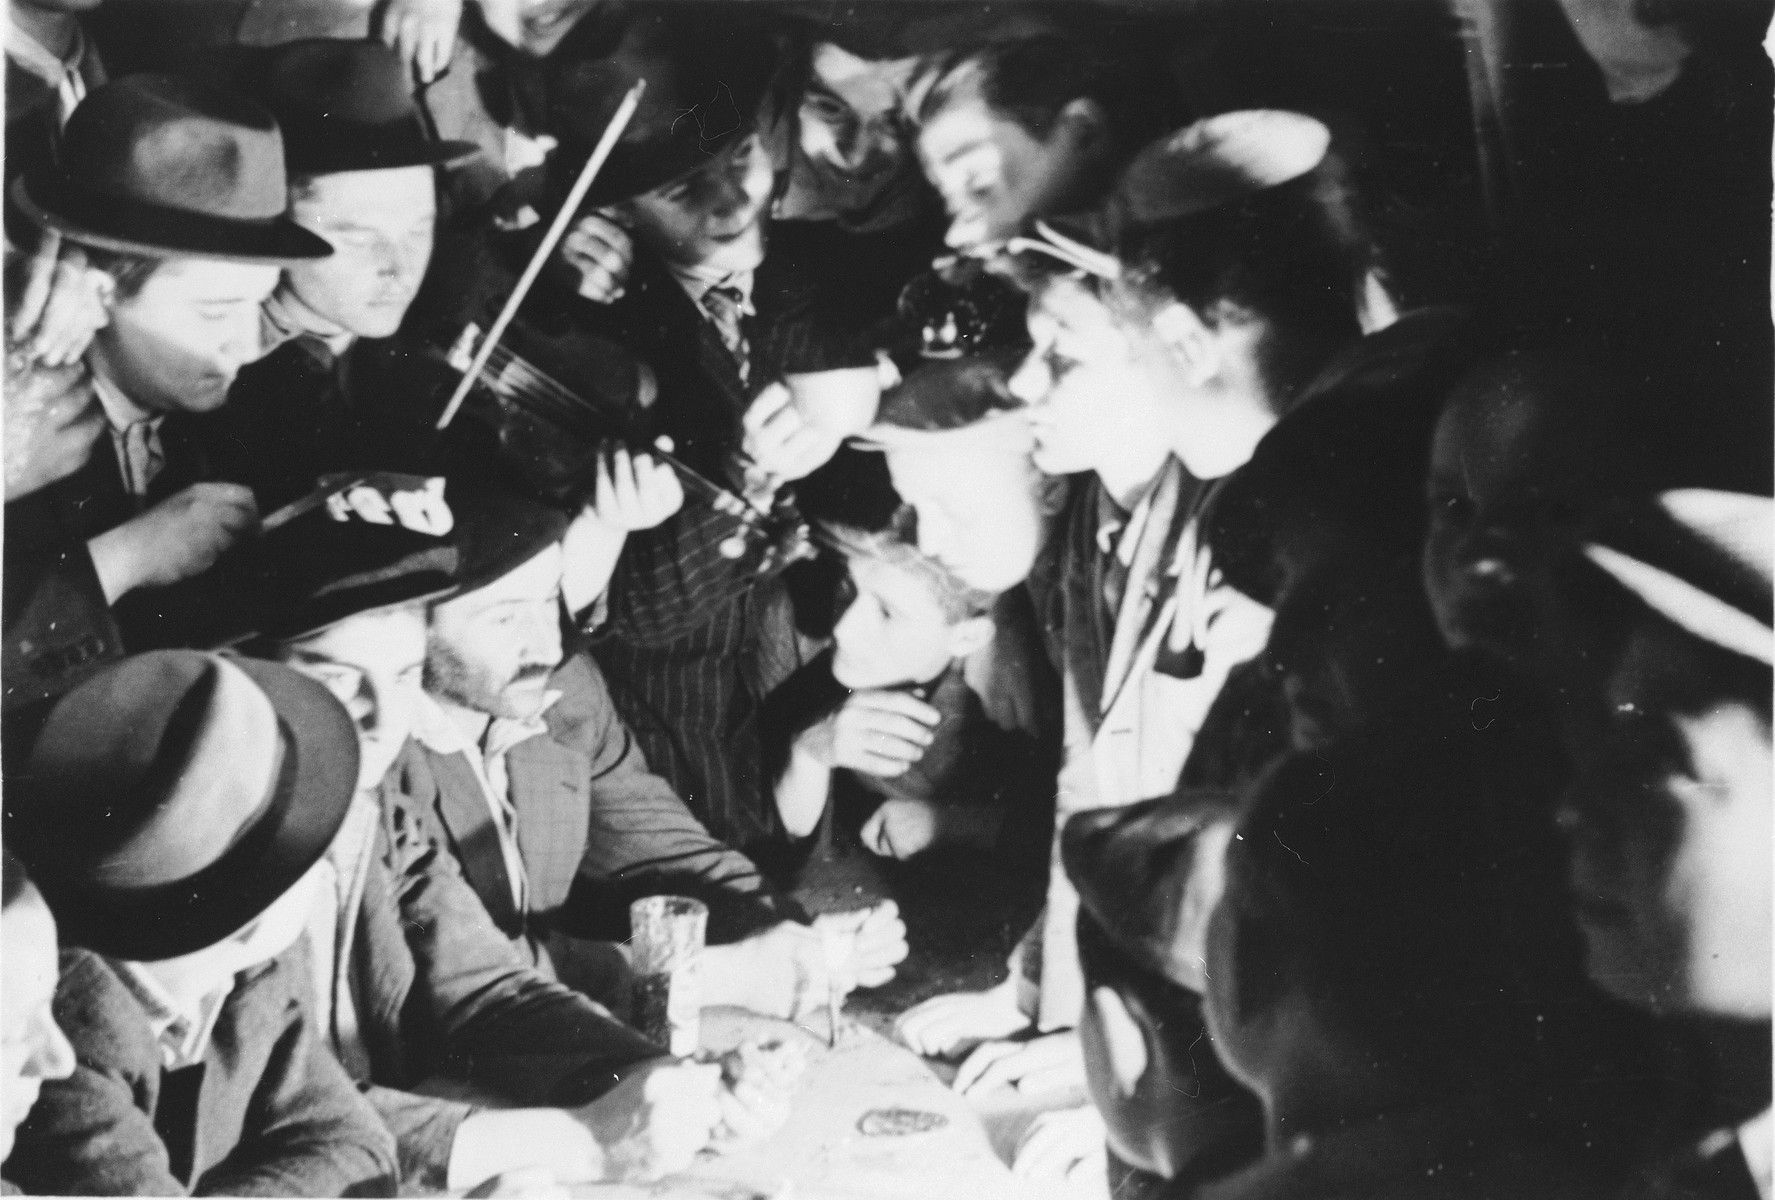 Mordechai (now Marc) Klein plays for Jewish DP youth who numbered among the Buchenwald children, at an OSE (Oeuvre de Secours aux Enfants) children's home in France [either in Ambloy or Taverny].